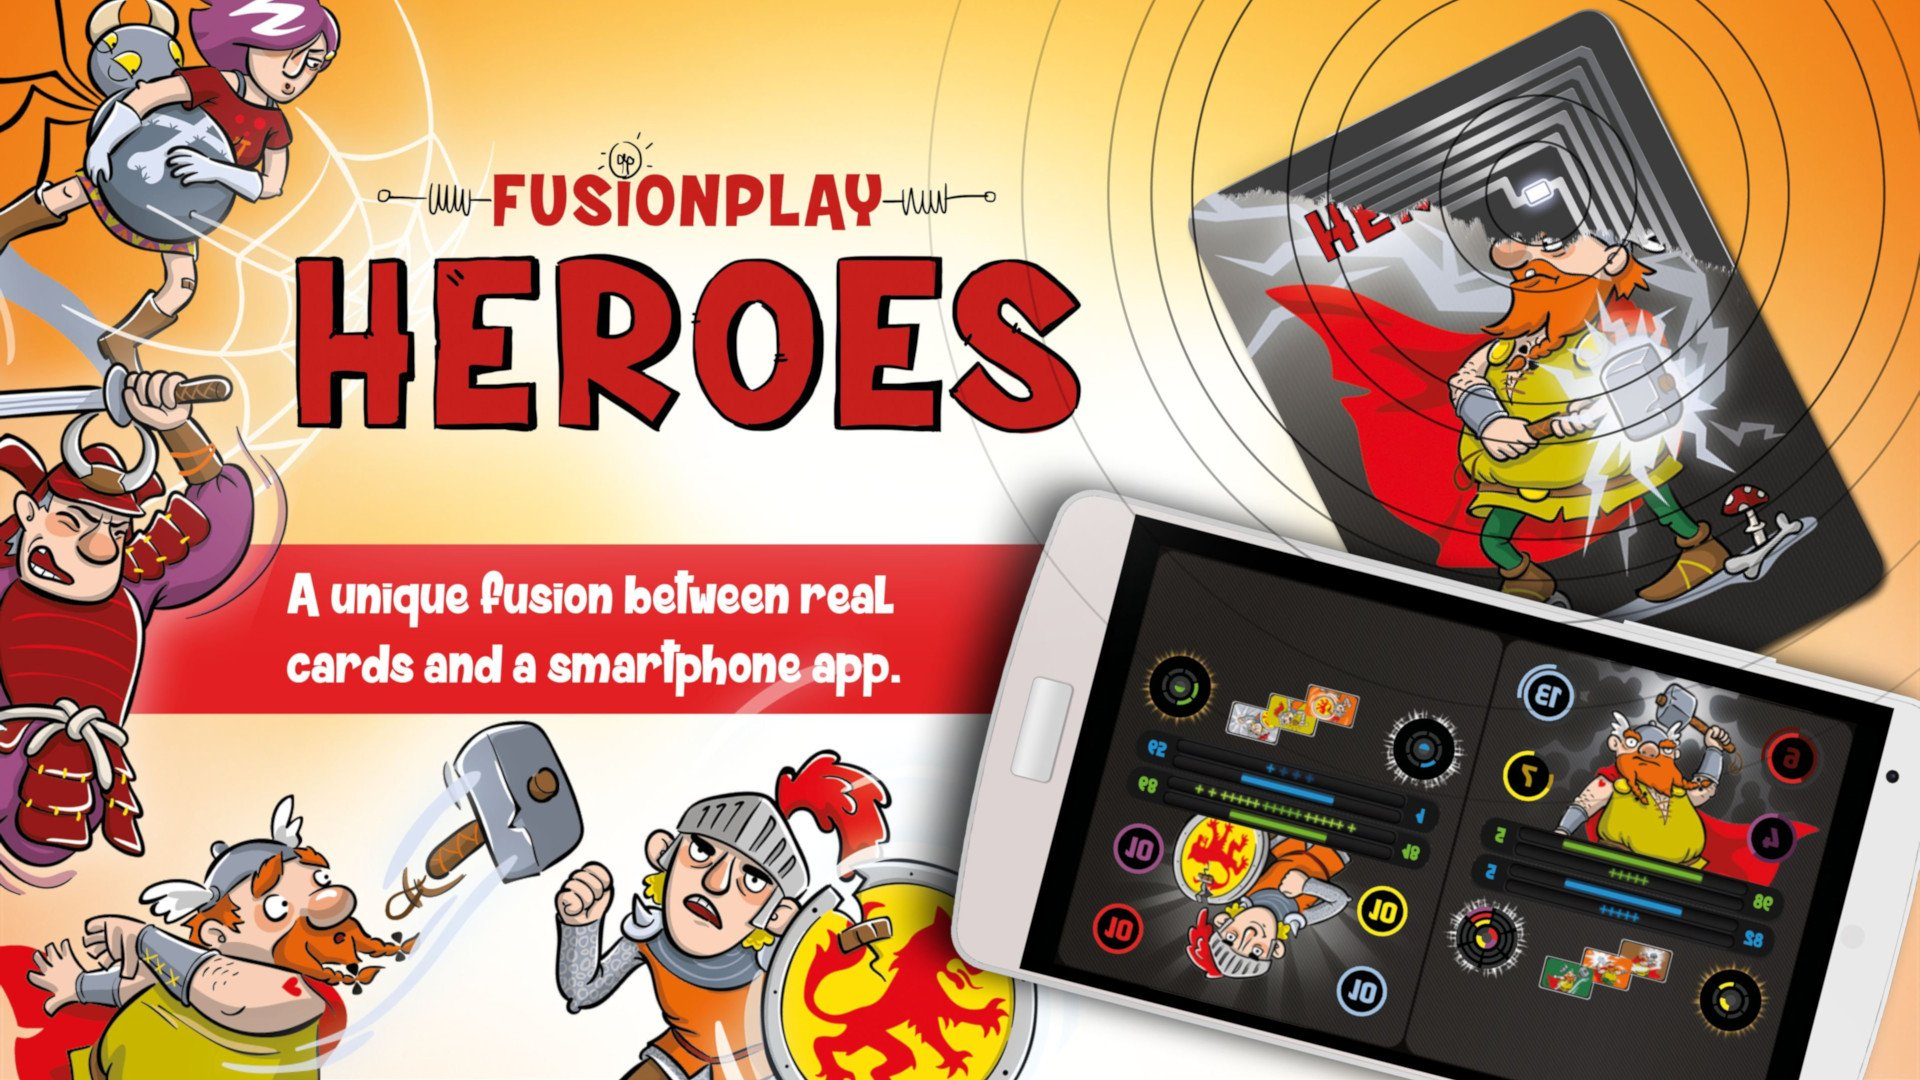 FusionPlay Heroes (NFC Cards and Android Device) Review